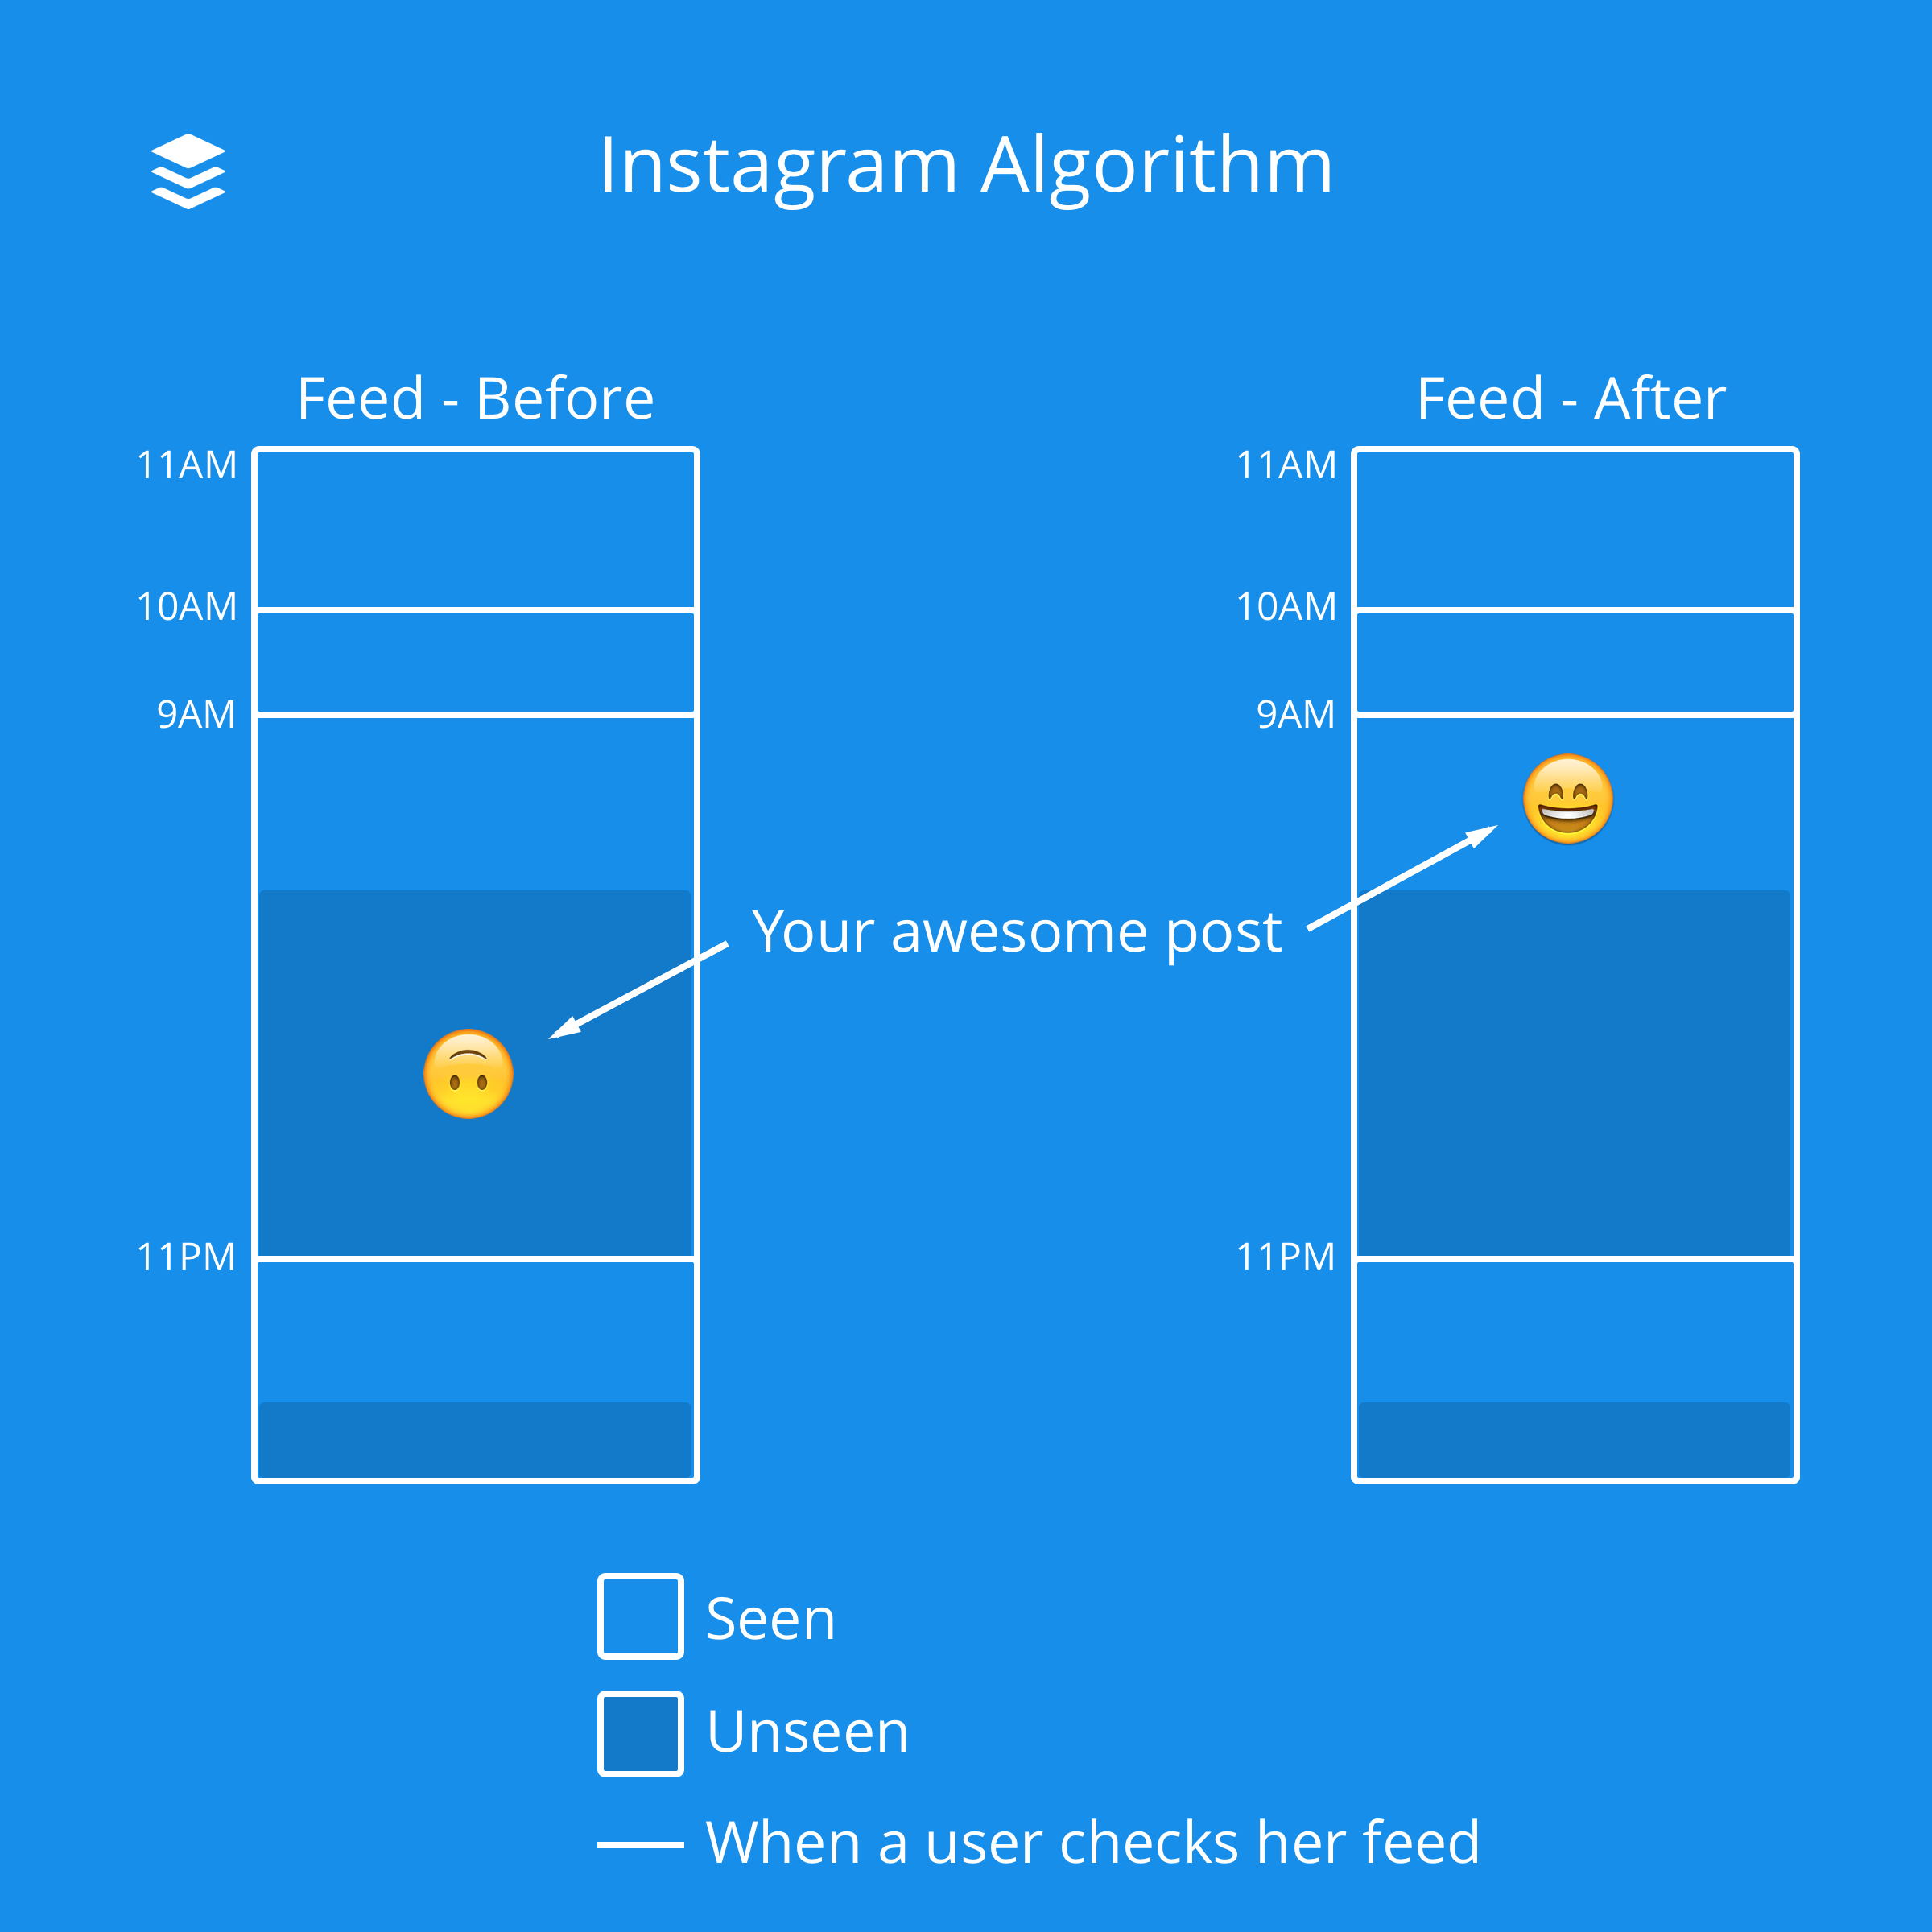 Instagram Algorithm - Feed Before and After